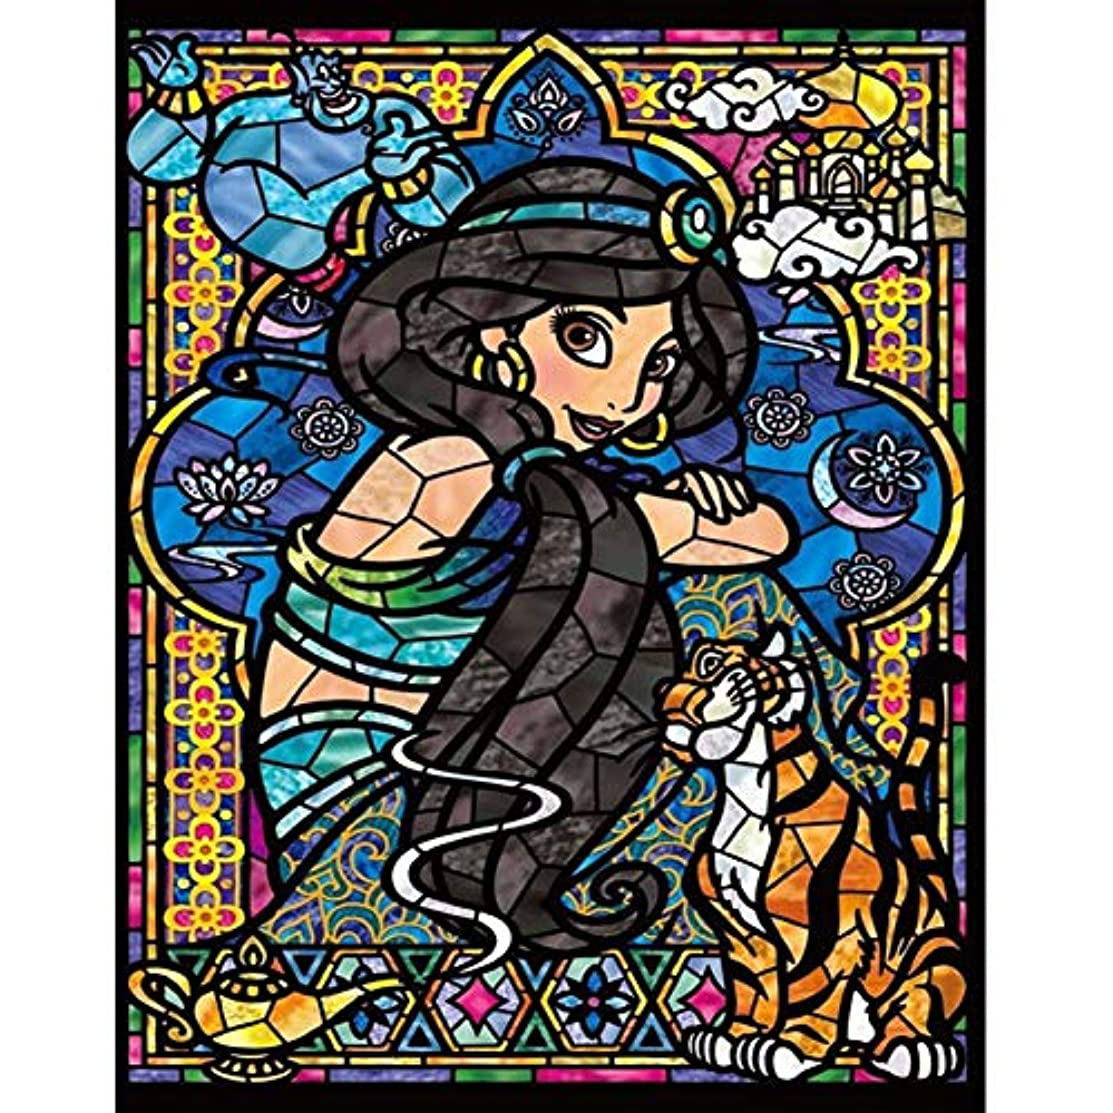 DIY 5D Diamond Painting Kits, Crystal Rhinestone Diamond Embroidery Paintings Pictures Arts Craft for Home Wall Decor, Full Drill(Aisha, 12x16inch)